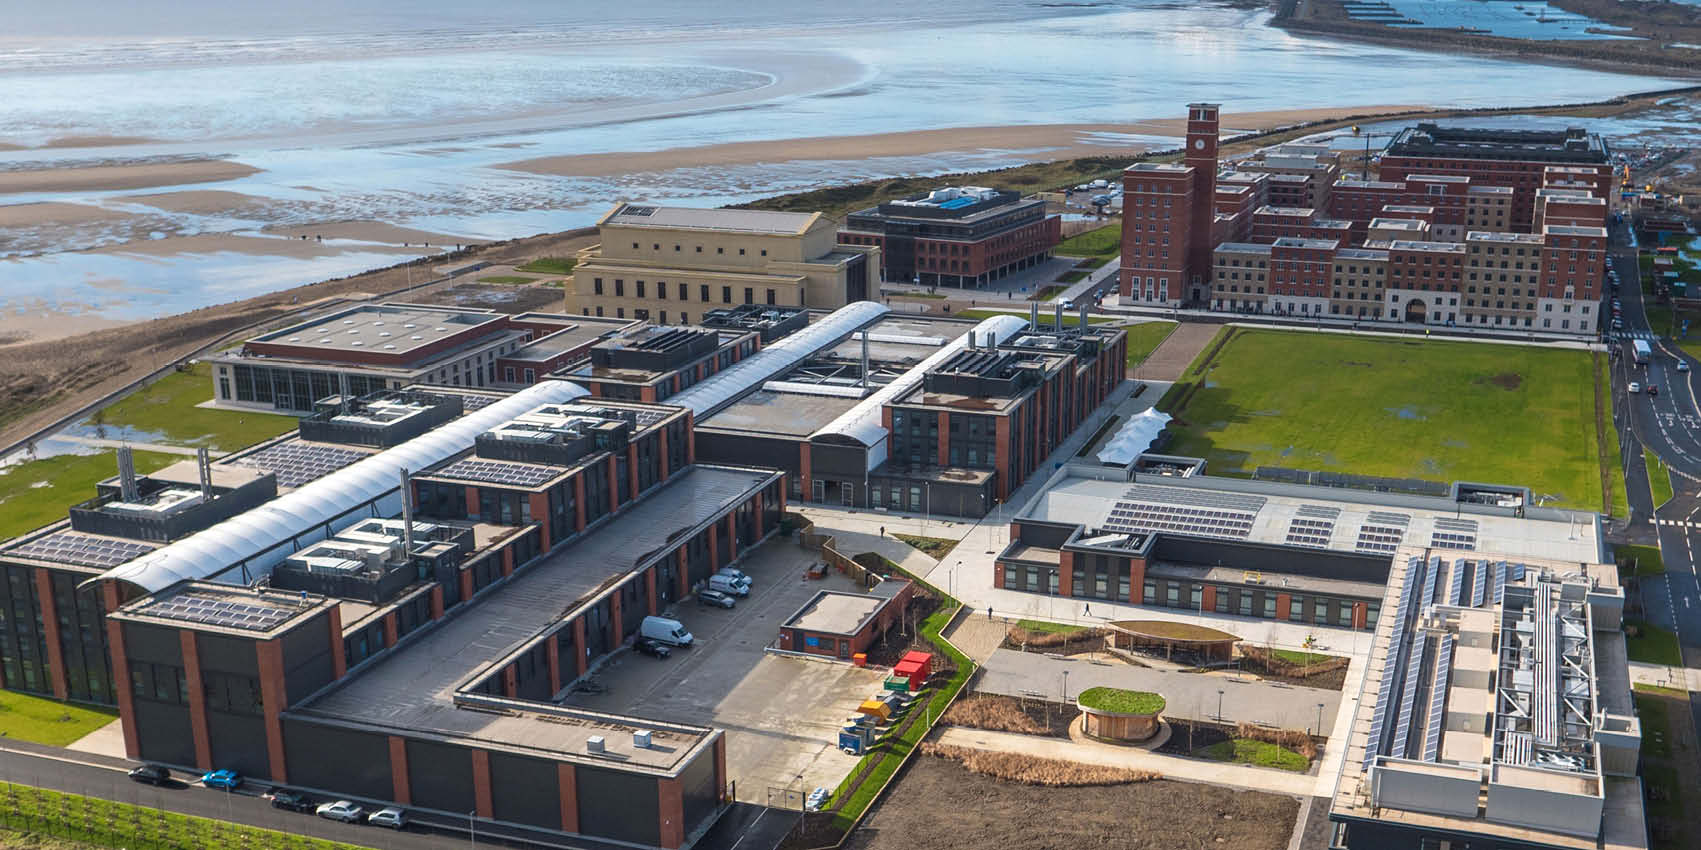 Swansea University Bay Campus overhead image